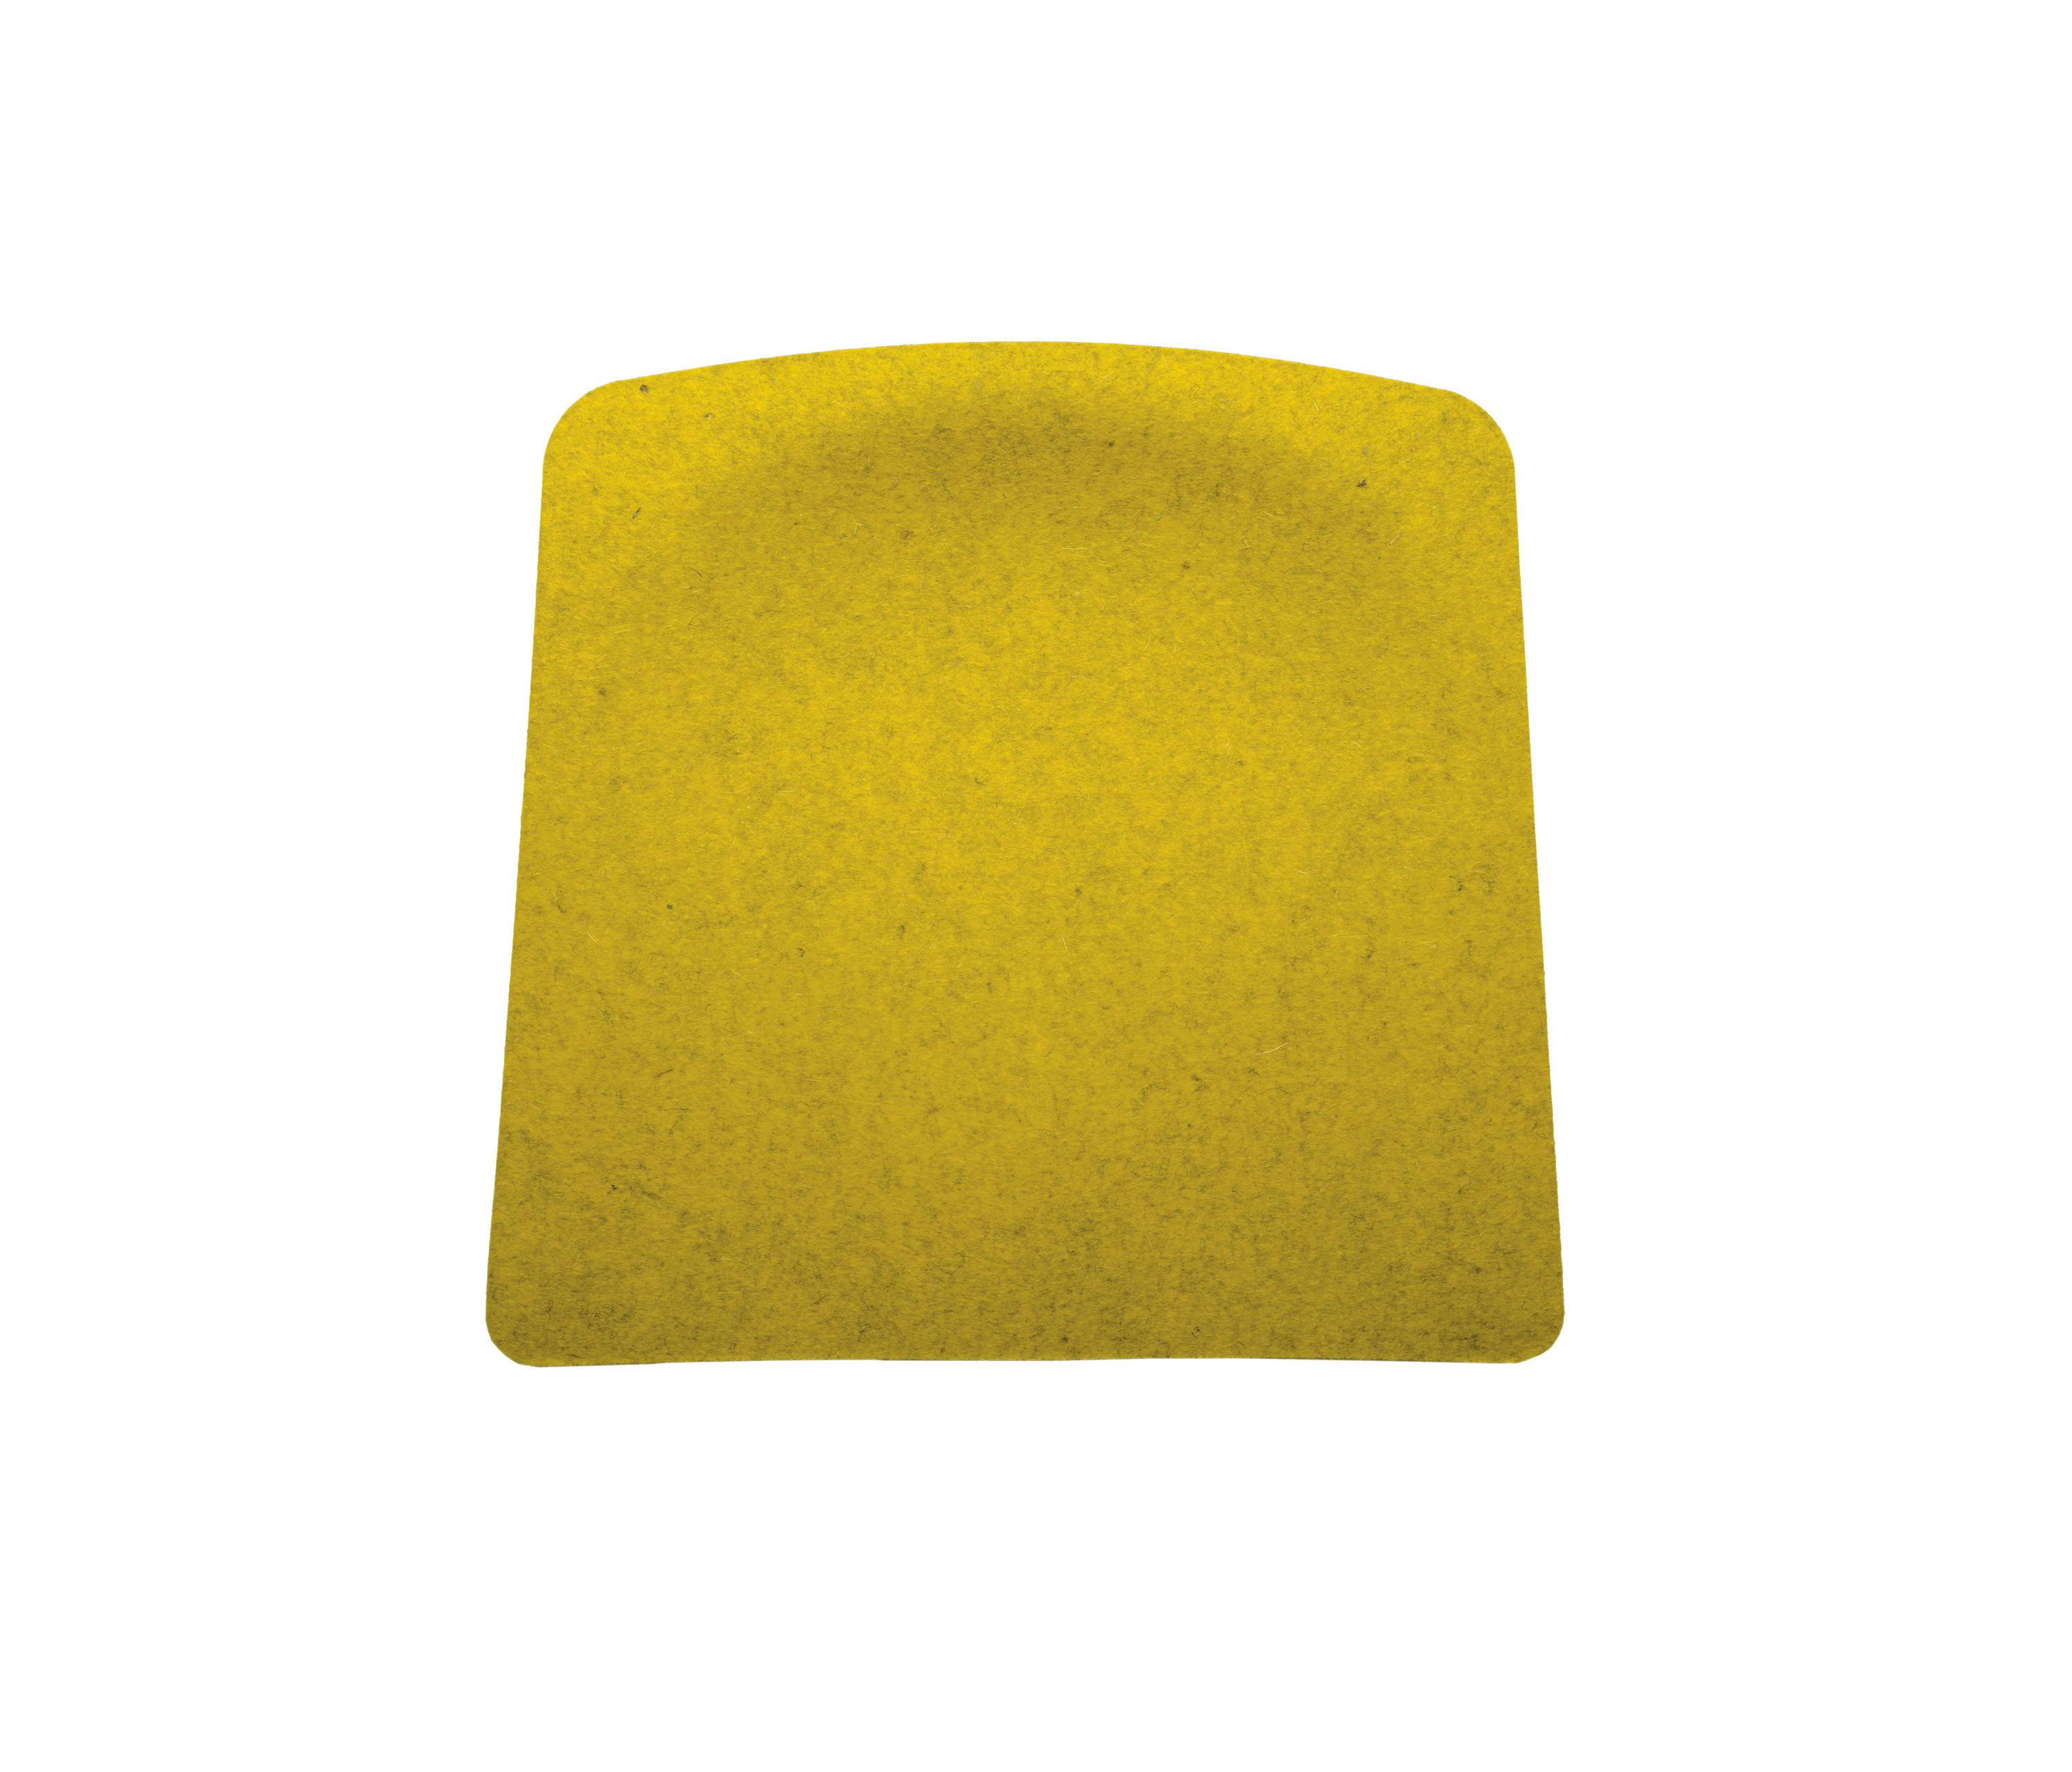 EMECO SEAT PADS Seat cushions from emeco